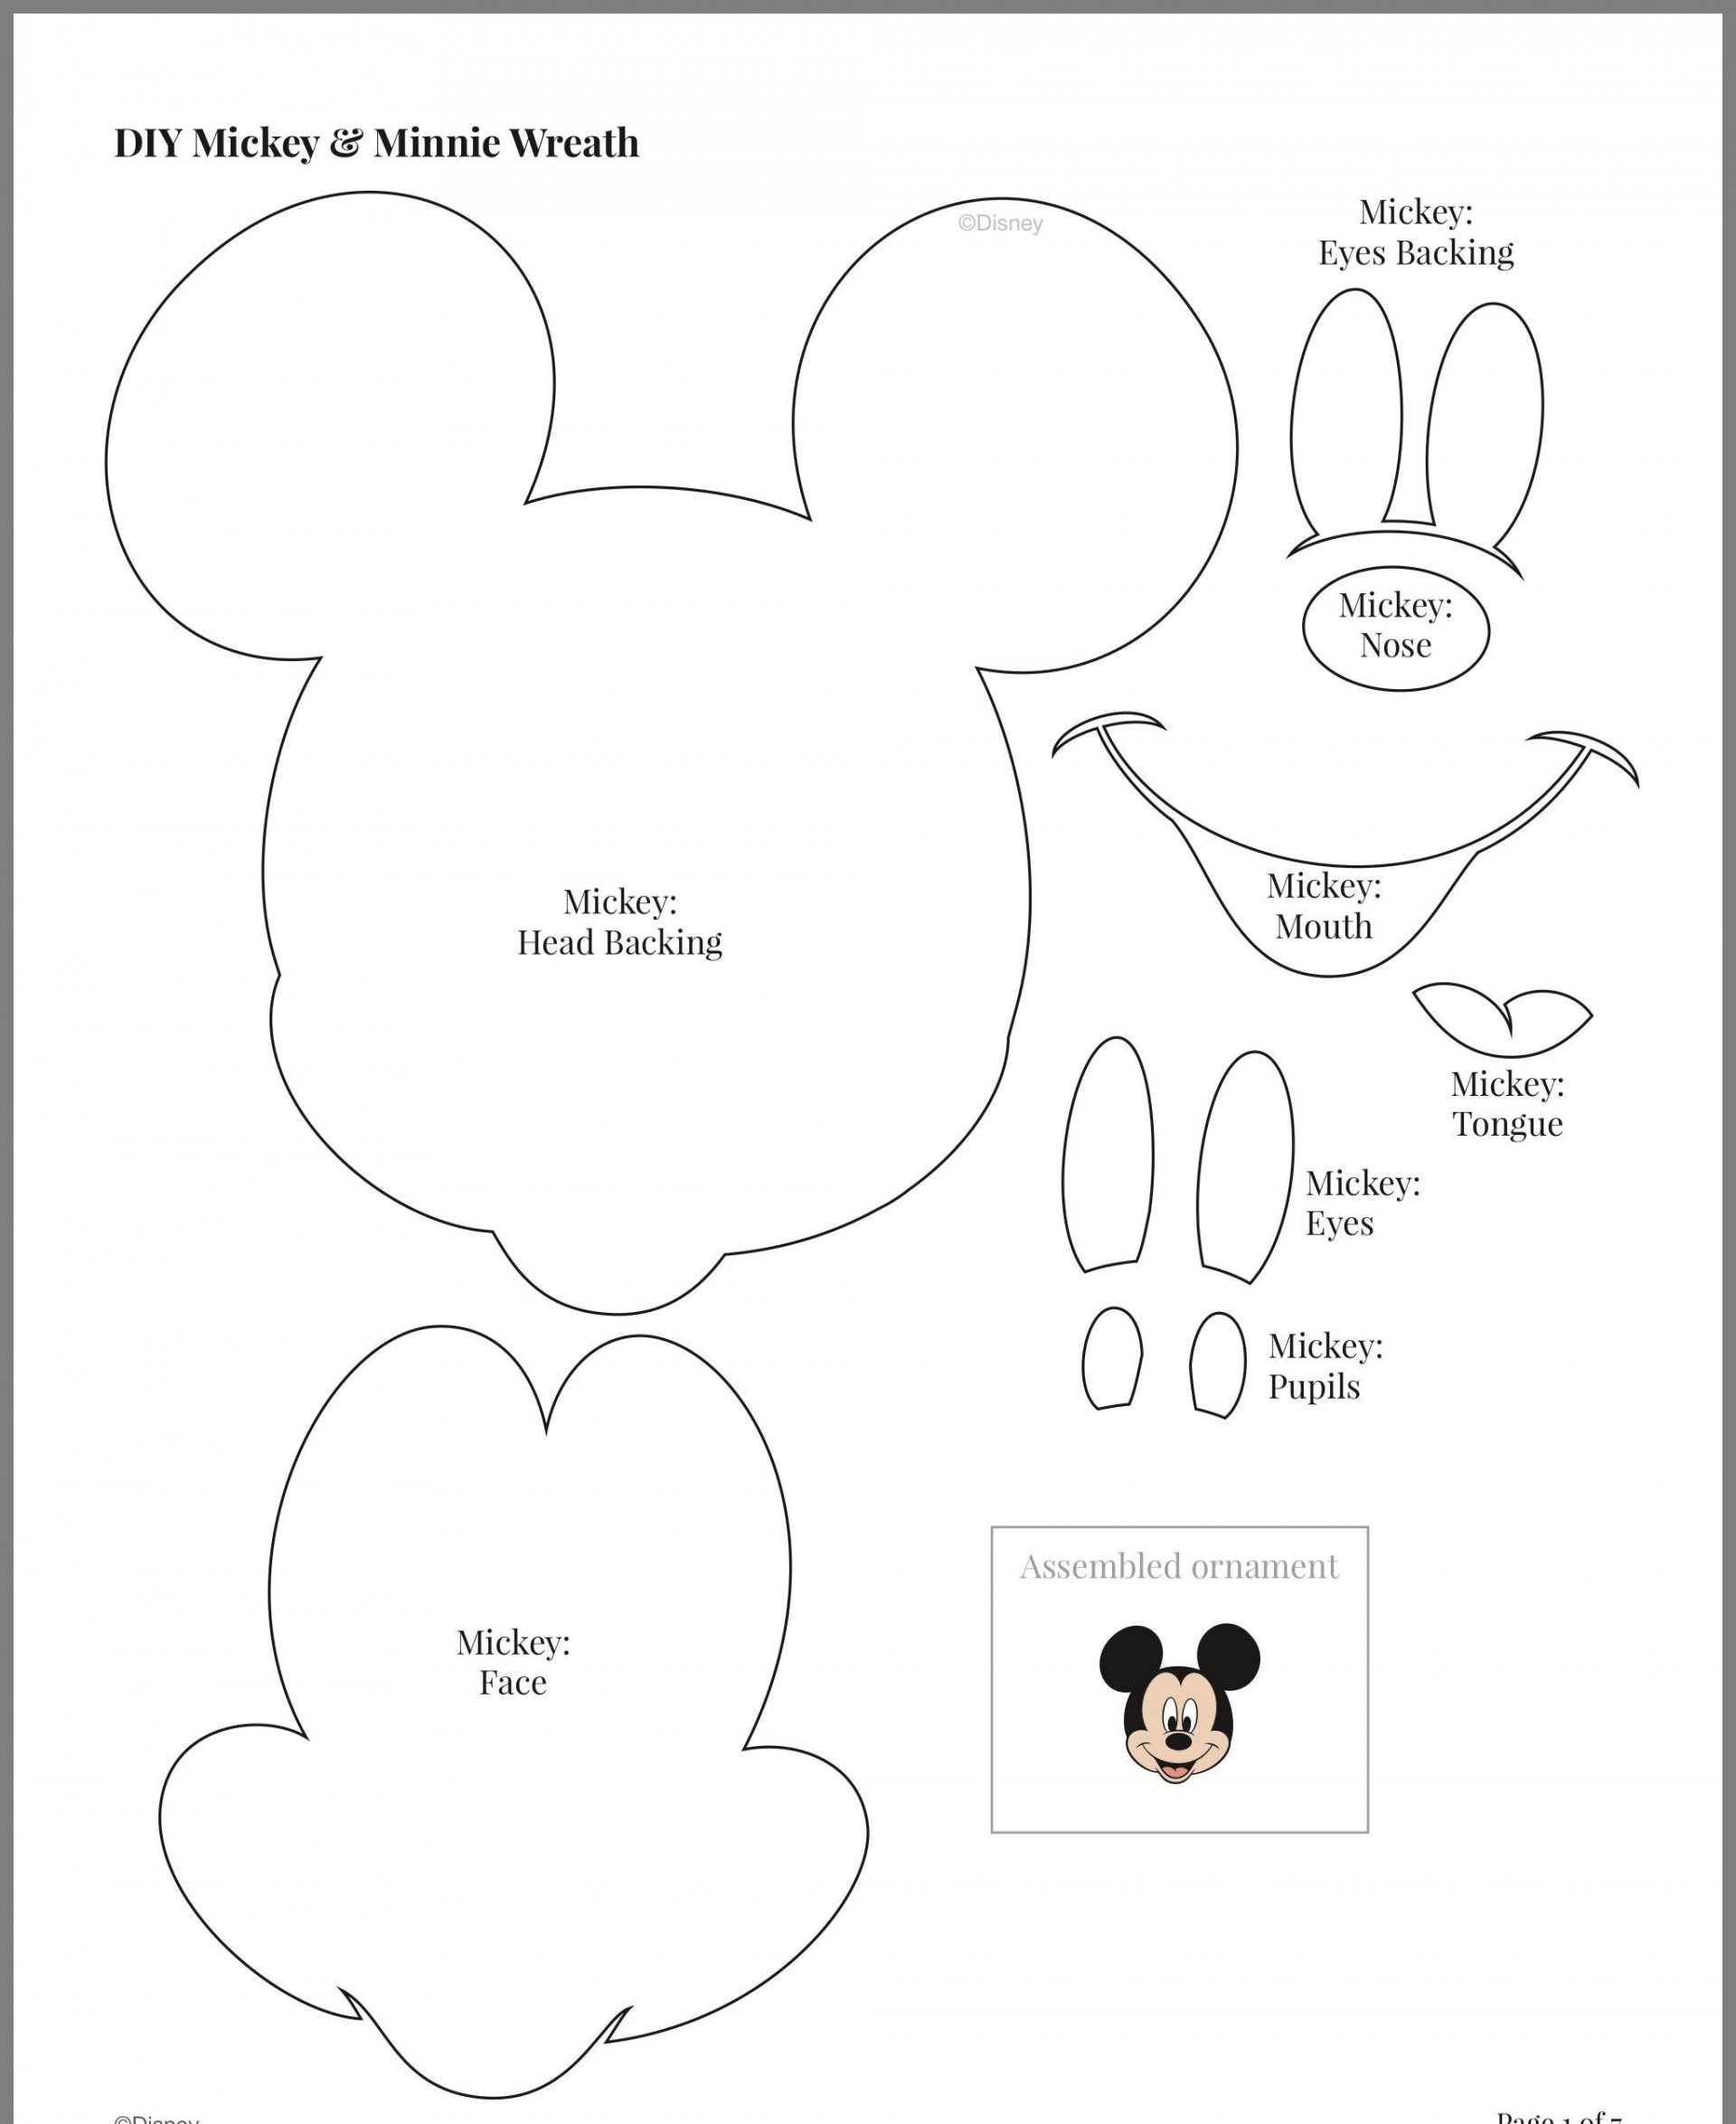 008 Breathtaking Mickey Mouse Face Template For Cake Highest Clarity  Printable1920